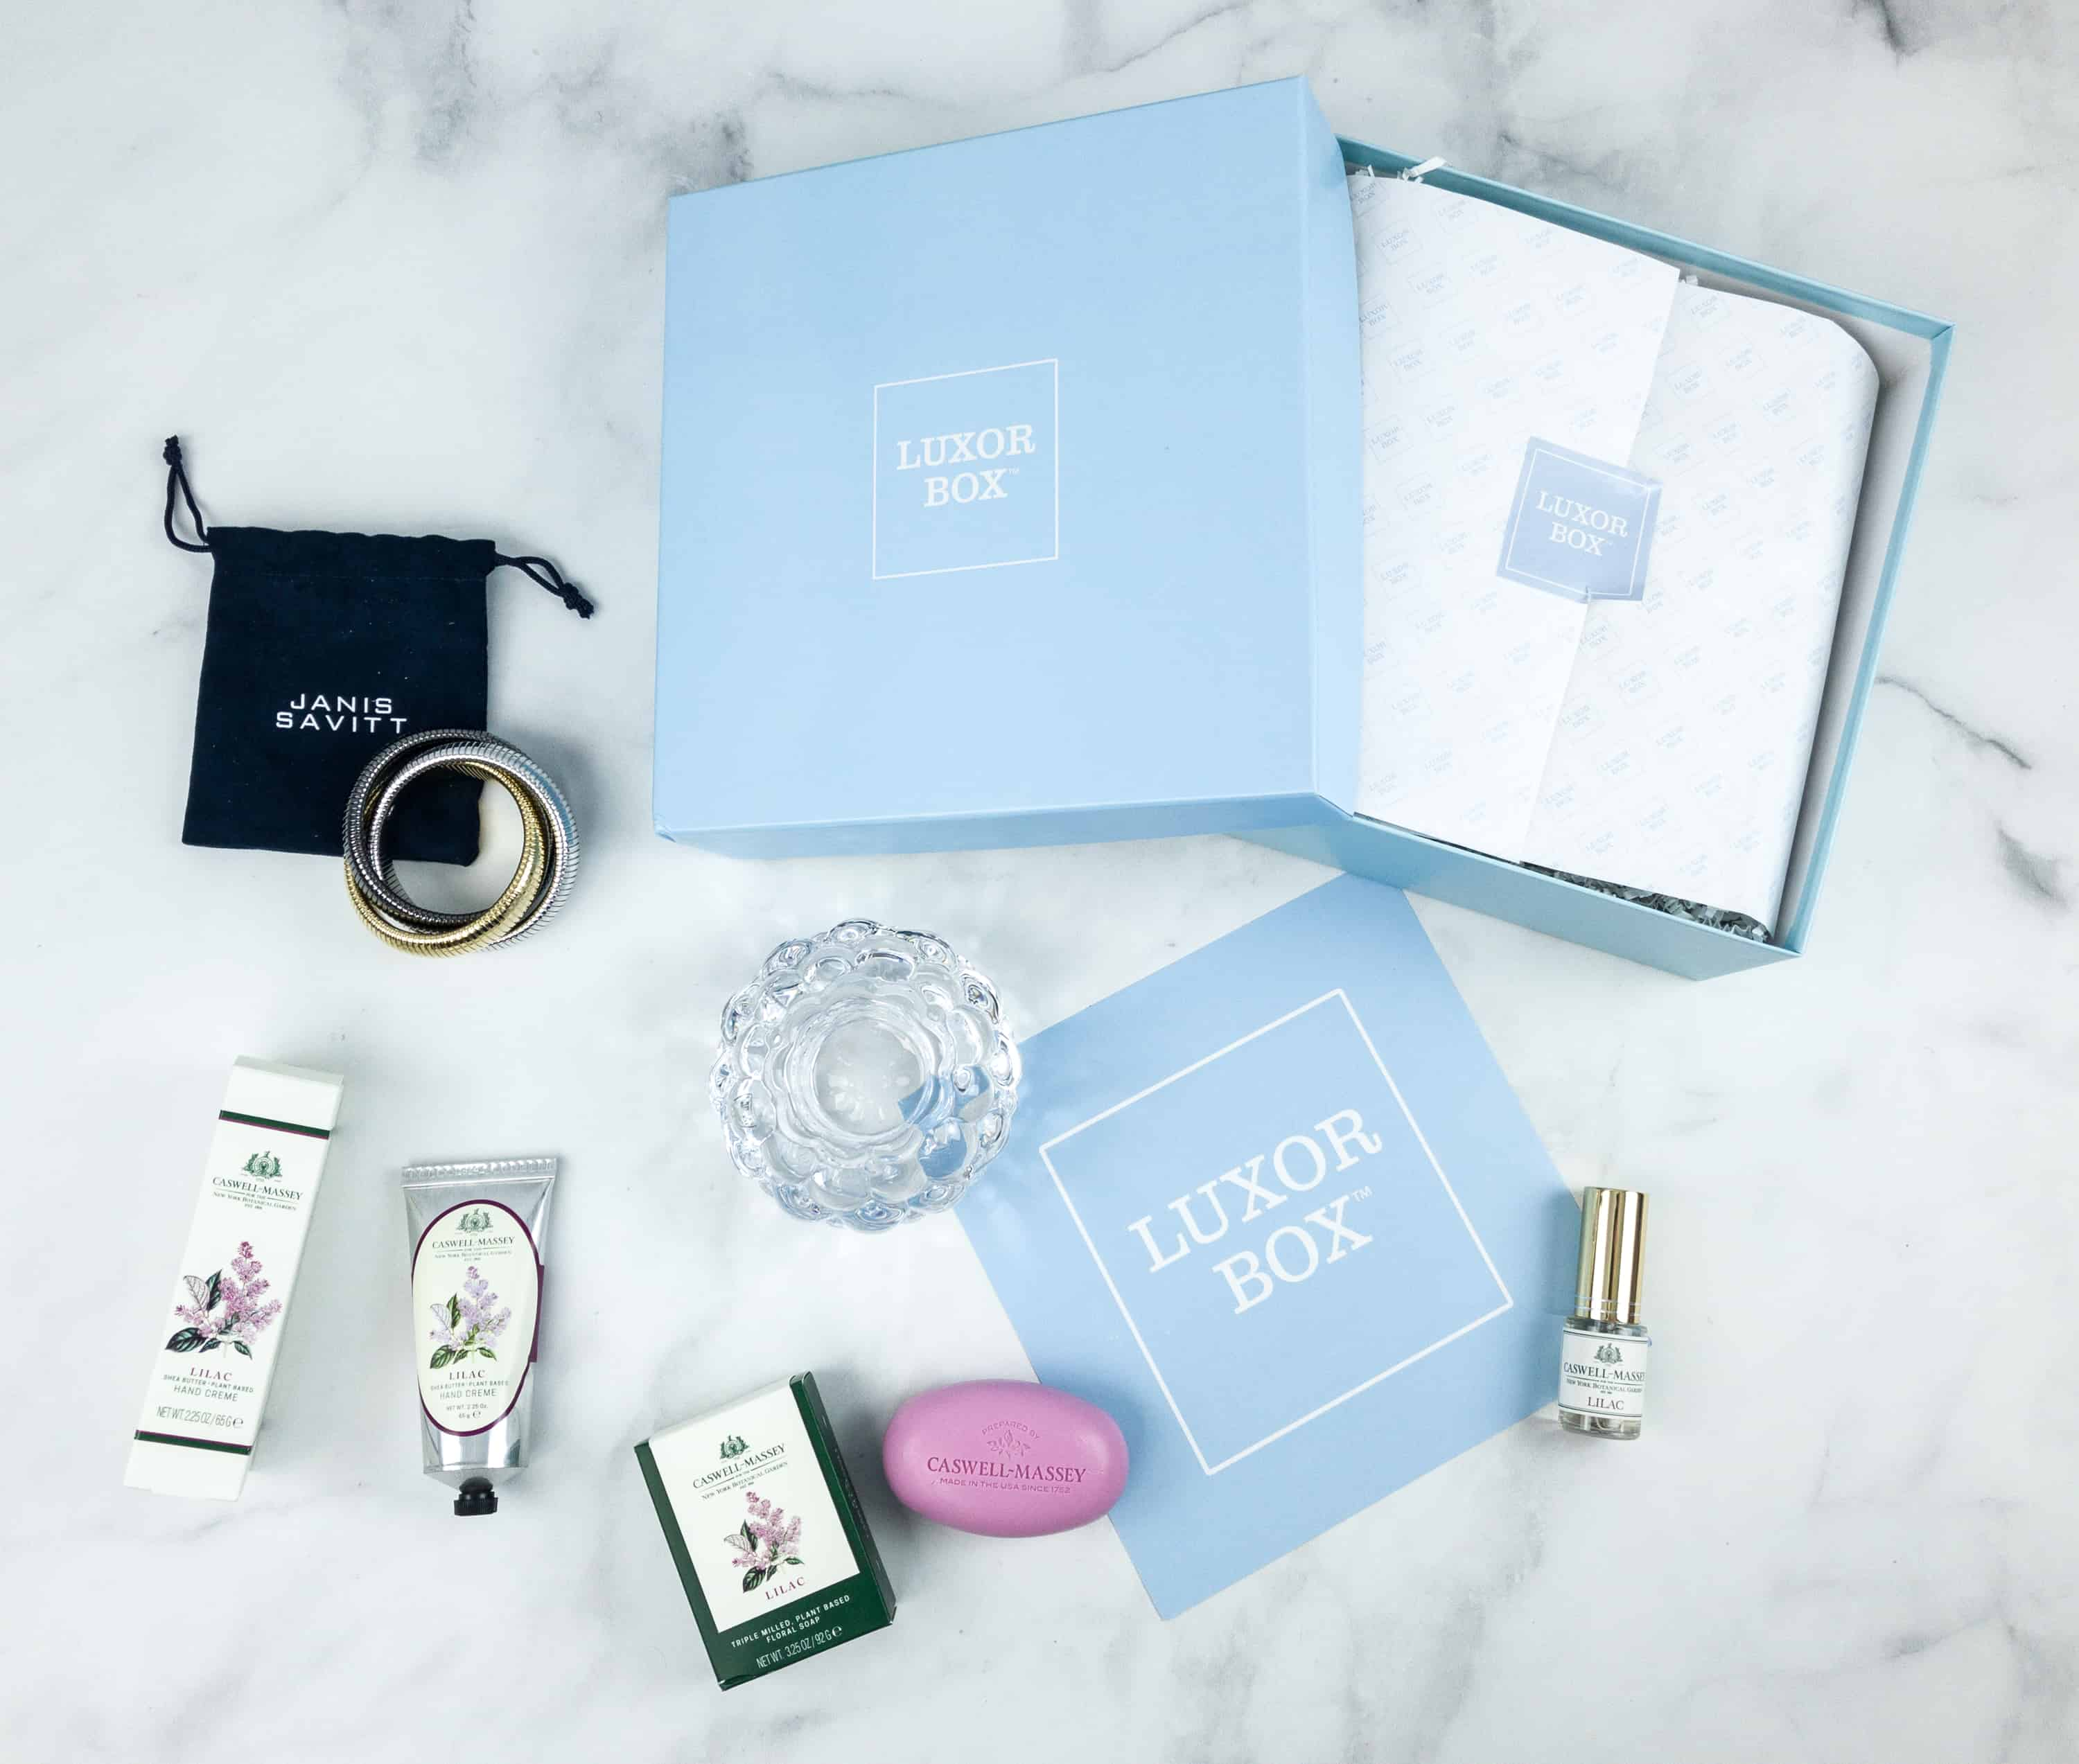 Luxor Box September 2018 Subscription Box Review